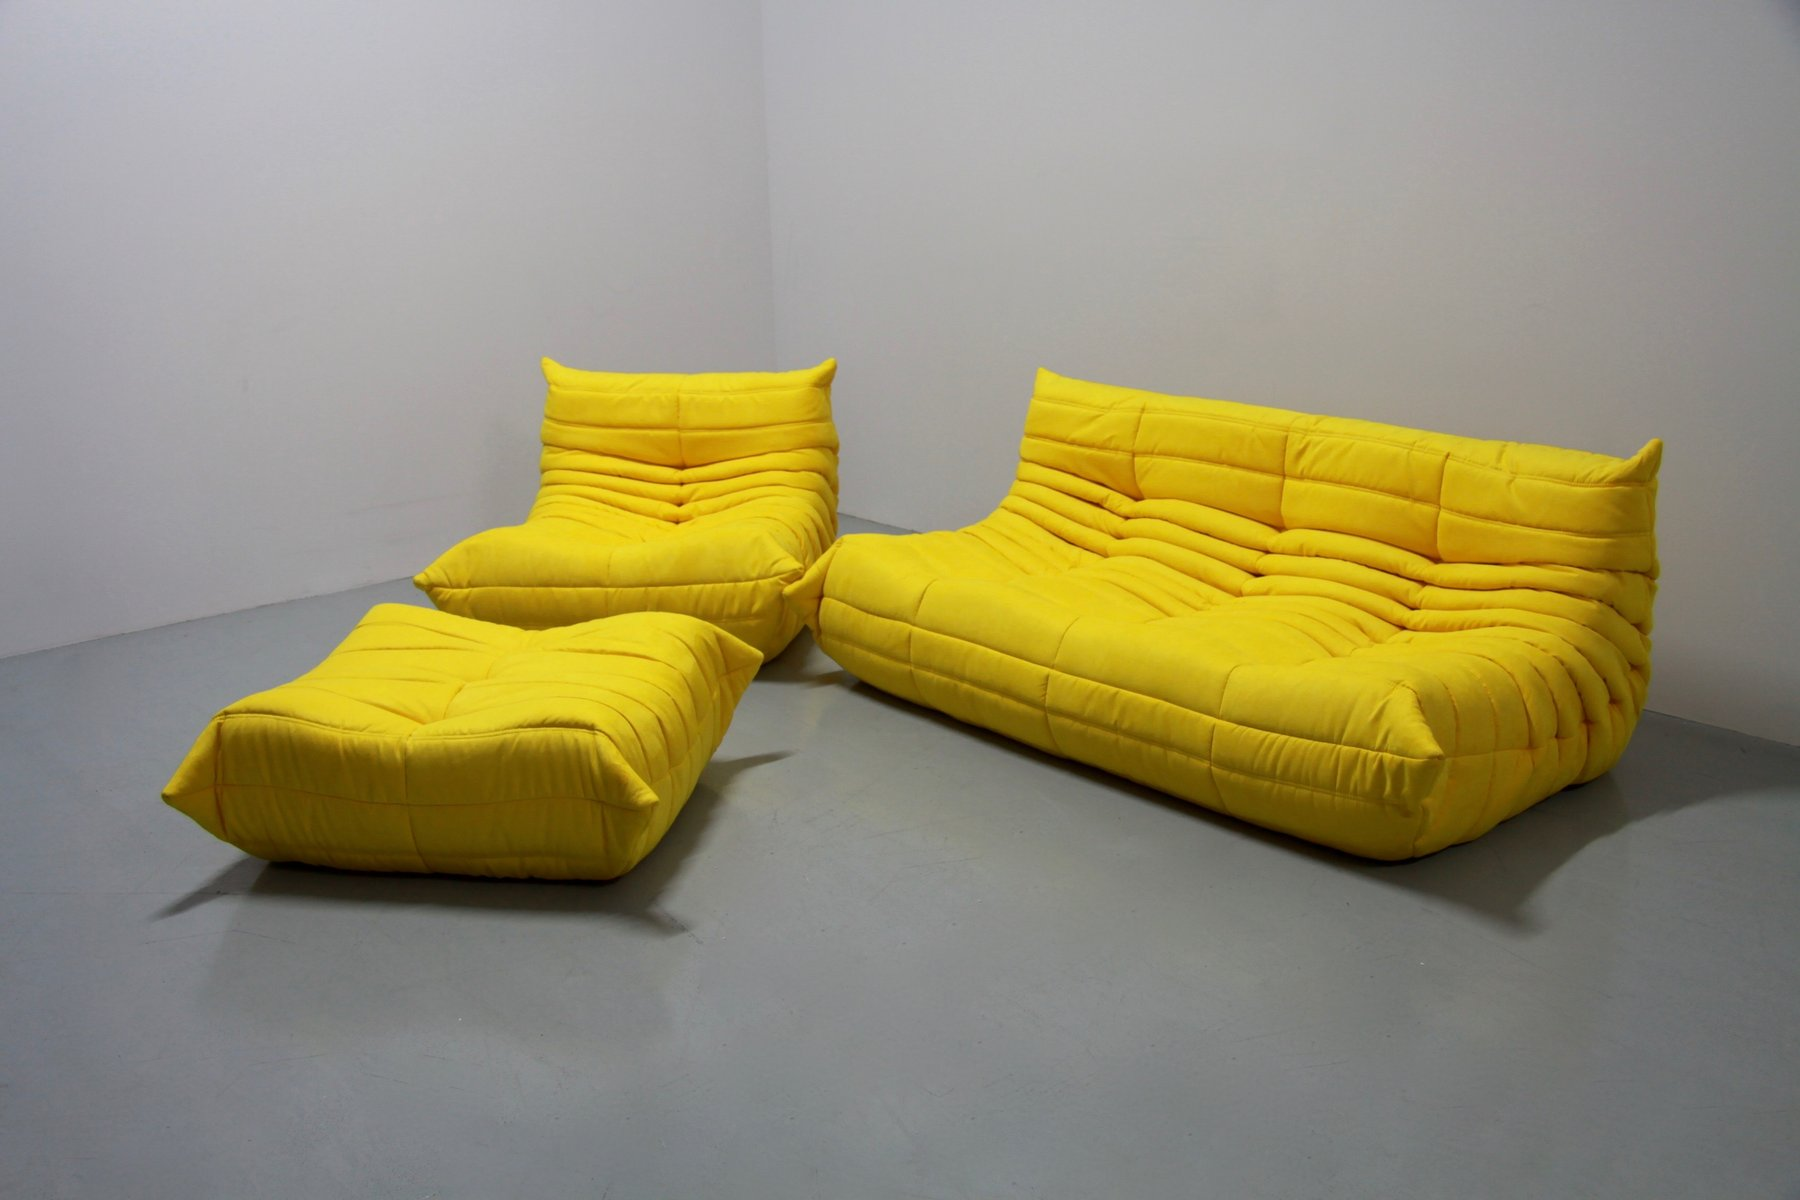 Exceptional Vintage Yellow Microfibre Togo Sofa Set By Michel Ducaroy For Ligne Roset,  1970s